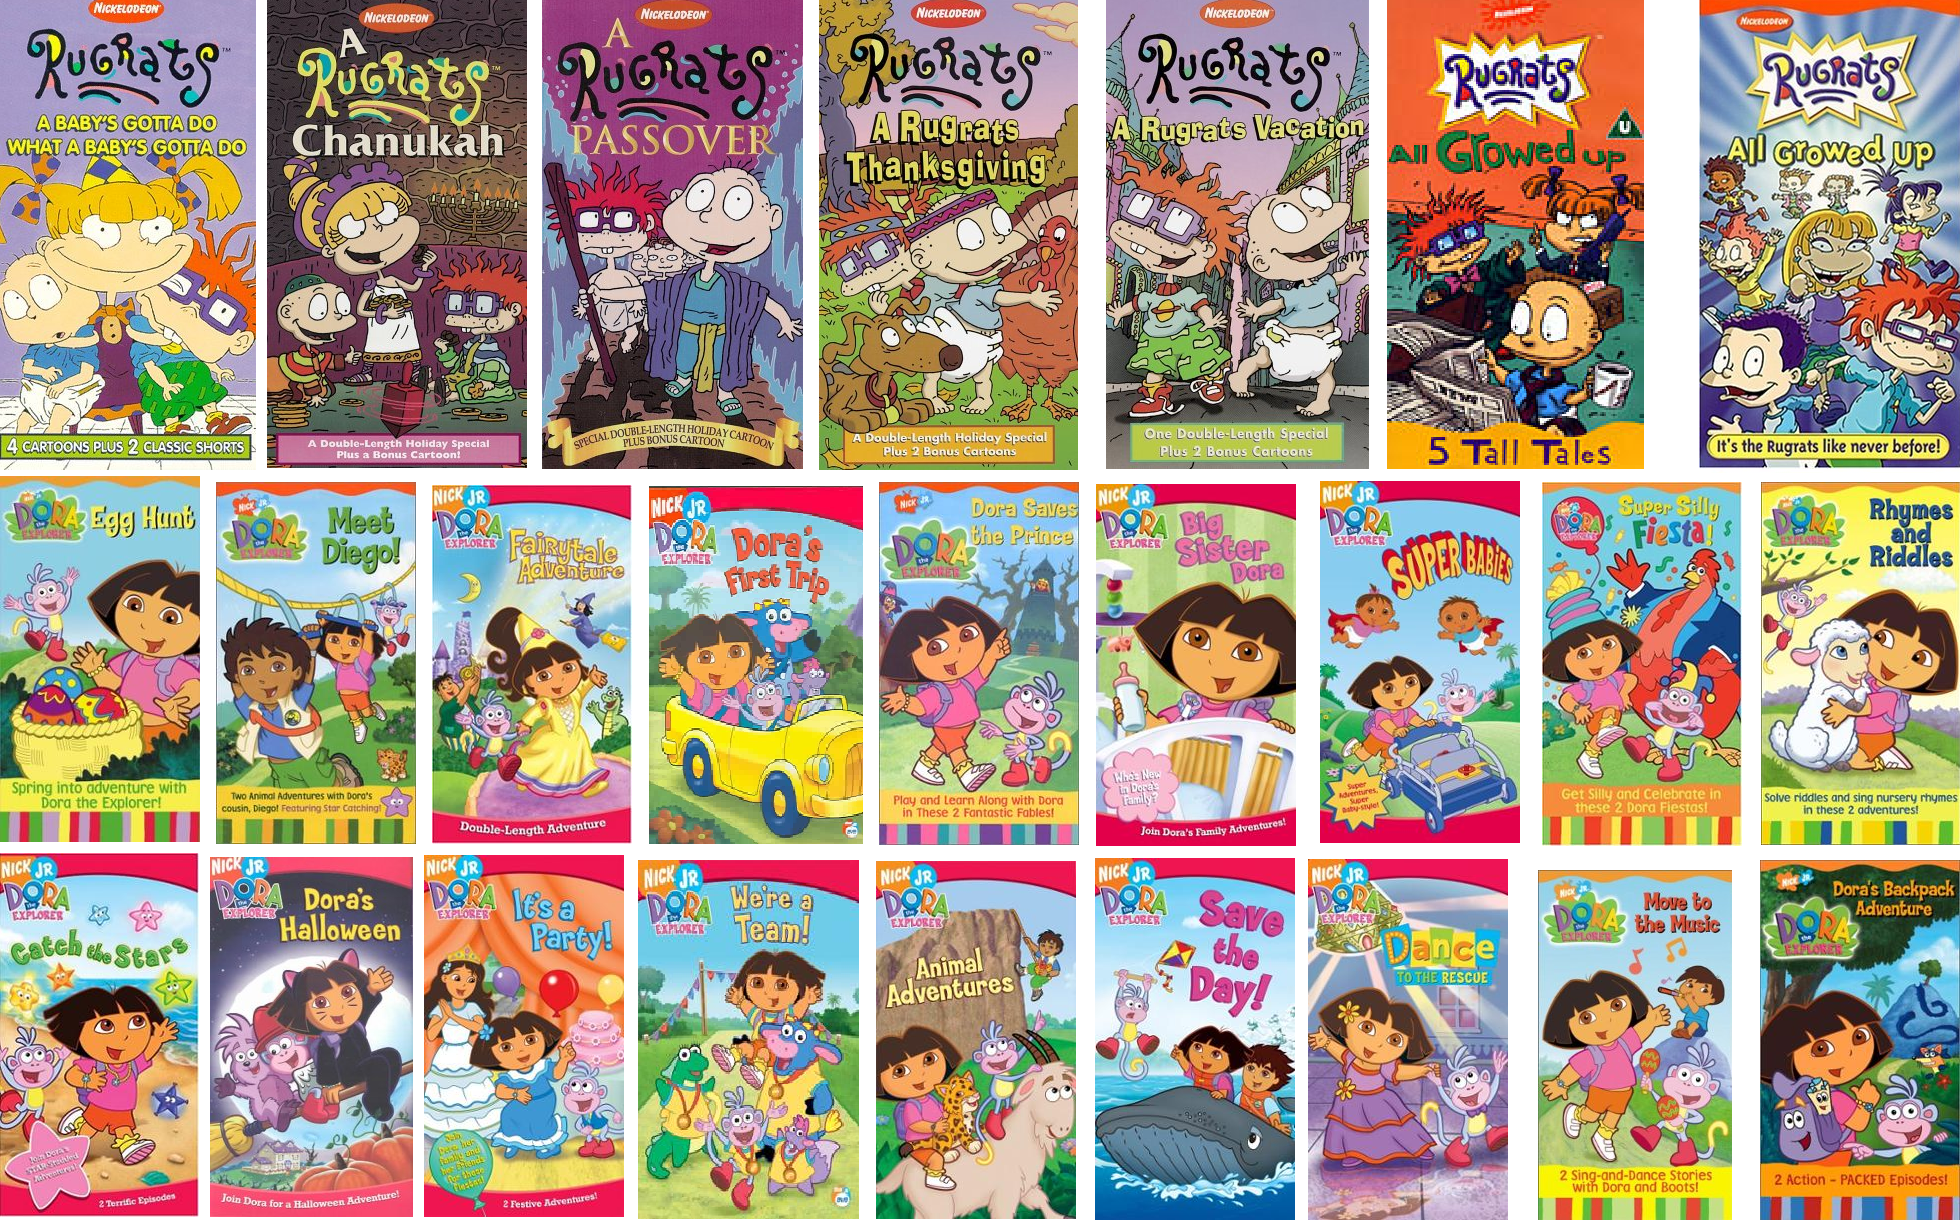 Disney's ABC Kids on VHS and DVD Collection